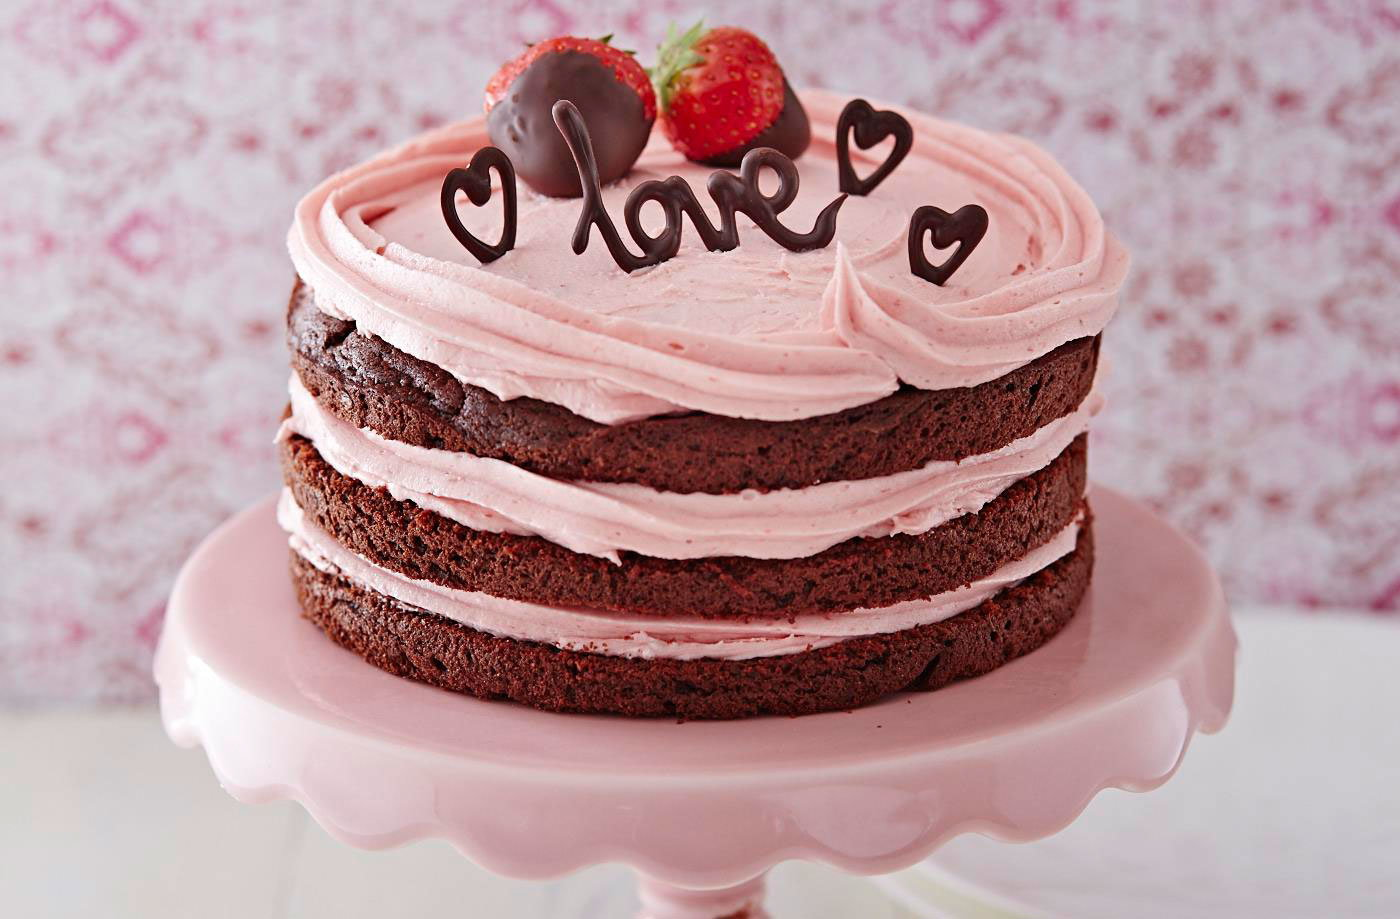 Chocolate Cake Recipe Uk Tesco: Naked Chocolate Valentine Cake